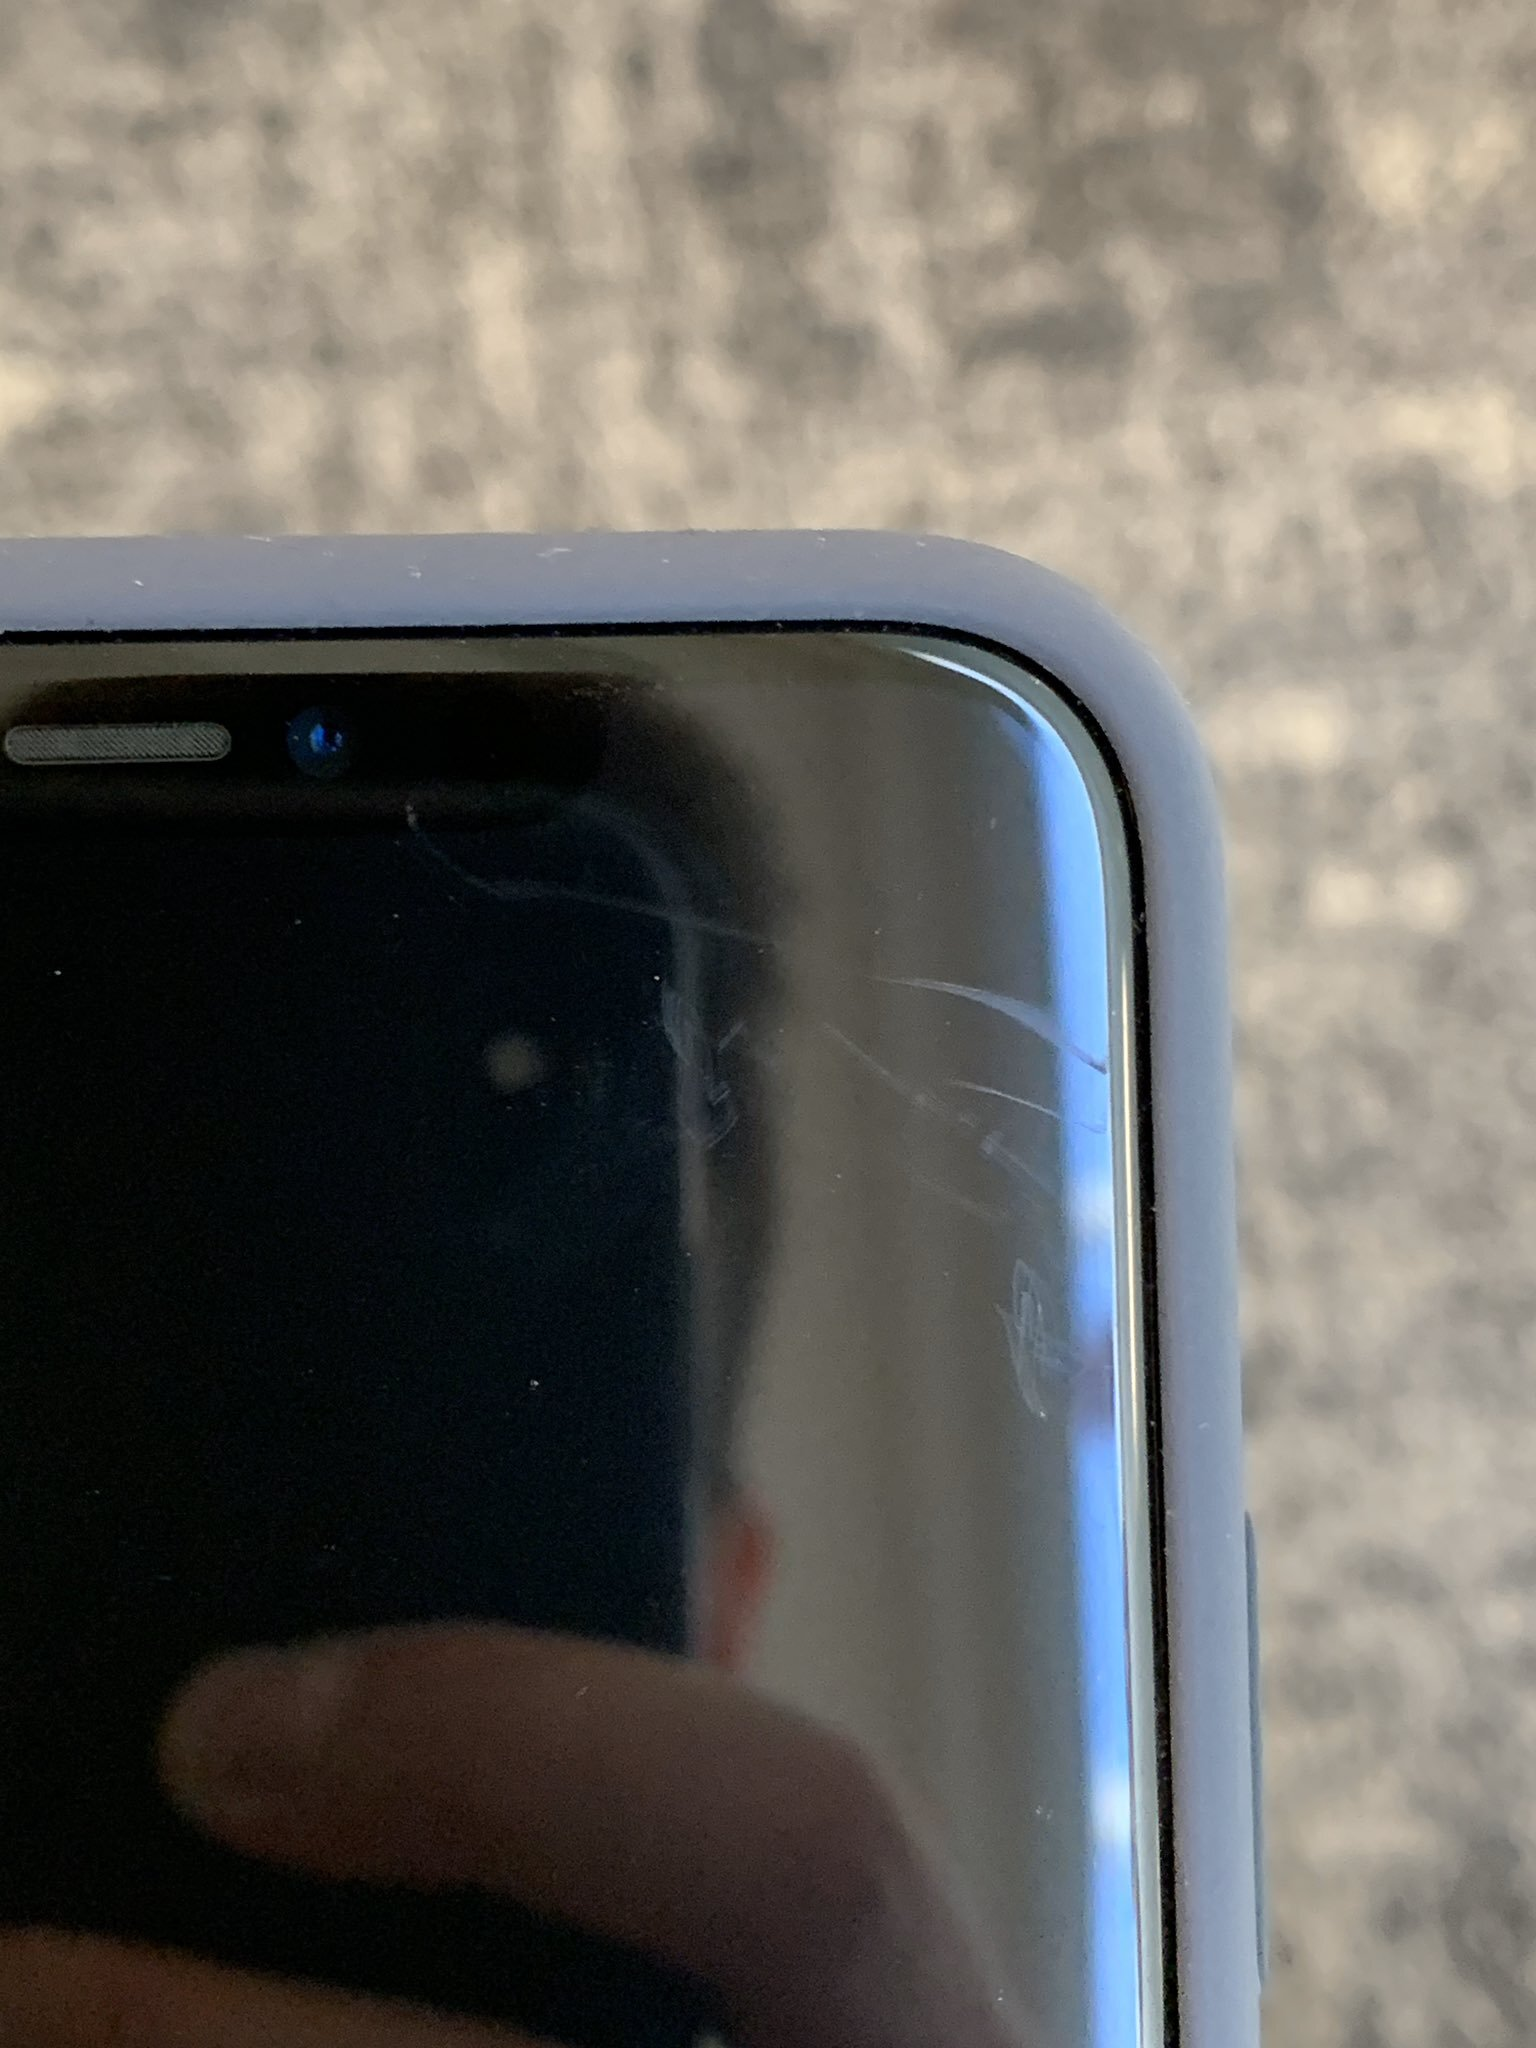 Despite being the strongest glass on an iPhone, they are still susceptible to scratches